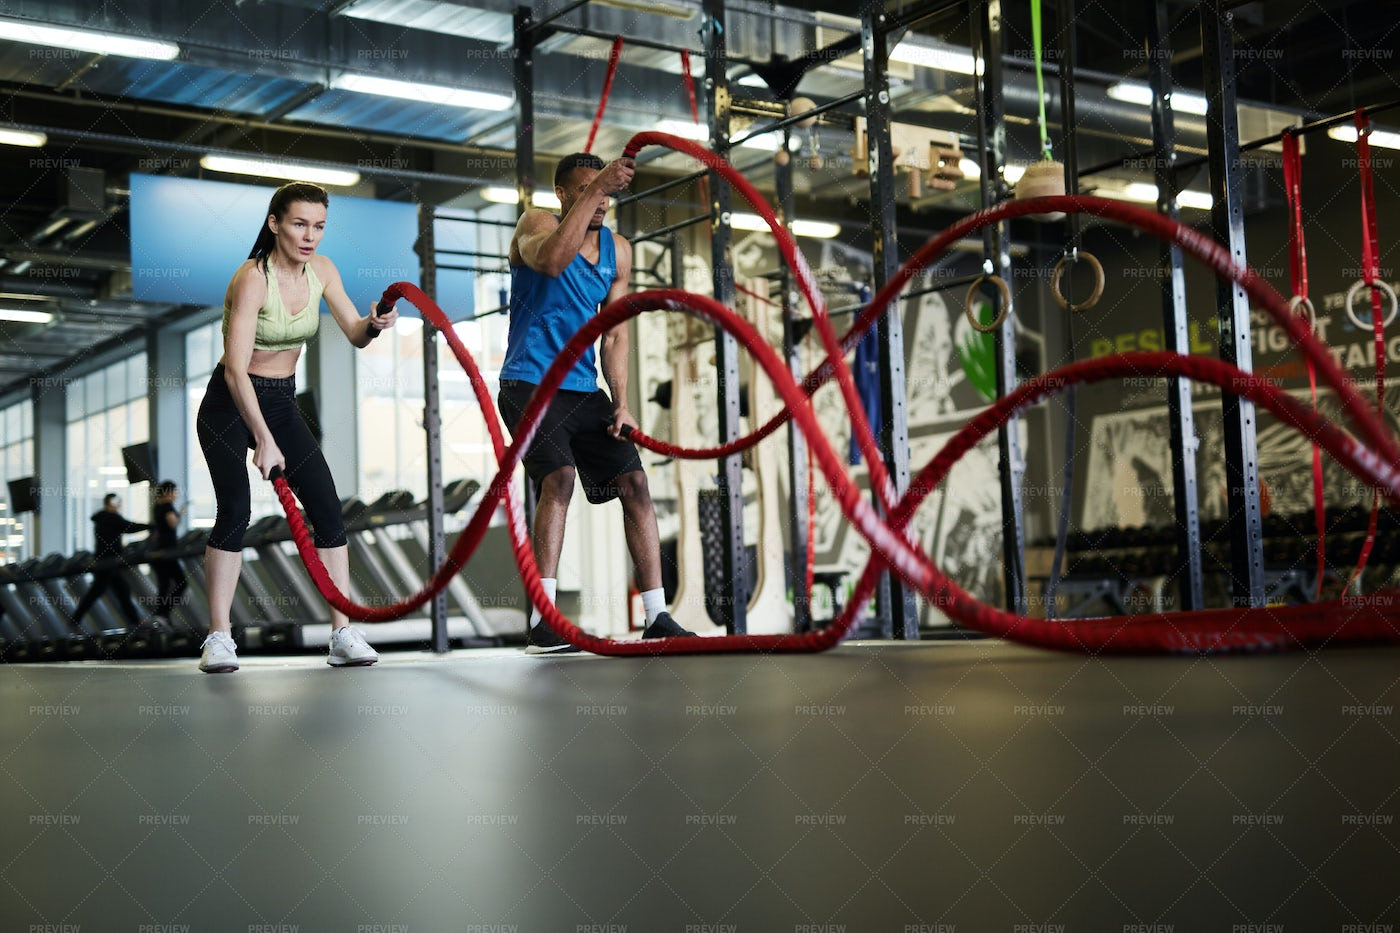 Couple Training With Battle Ropes: Stock Photos